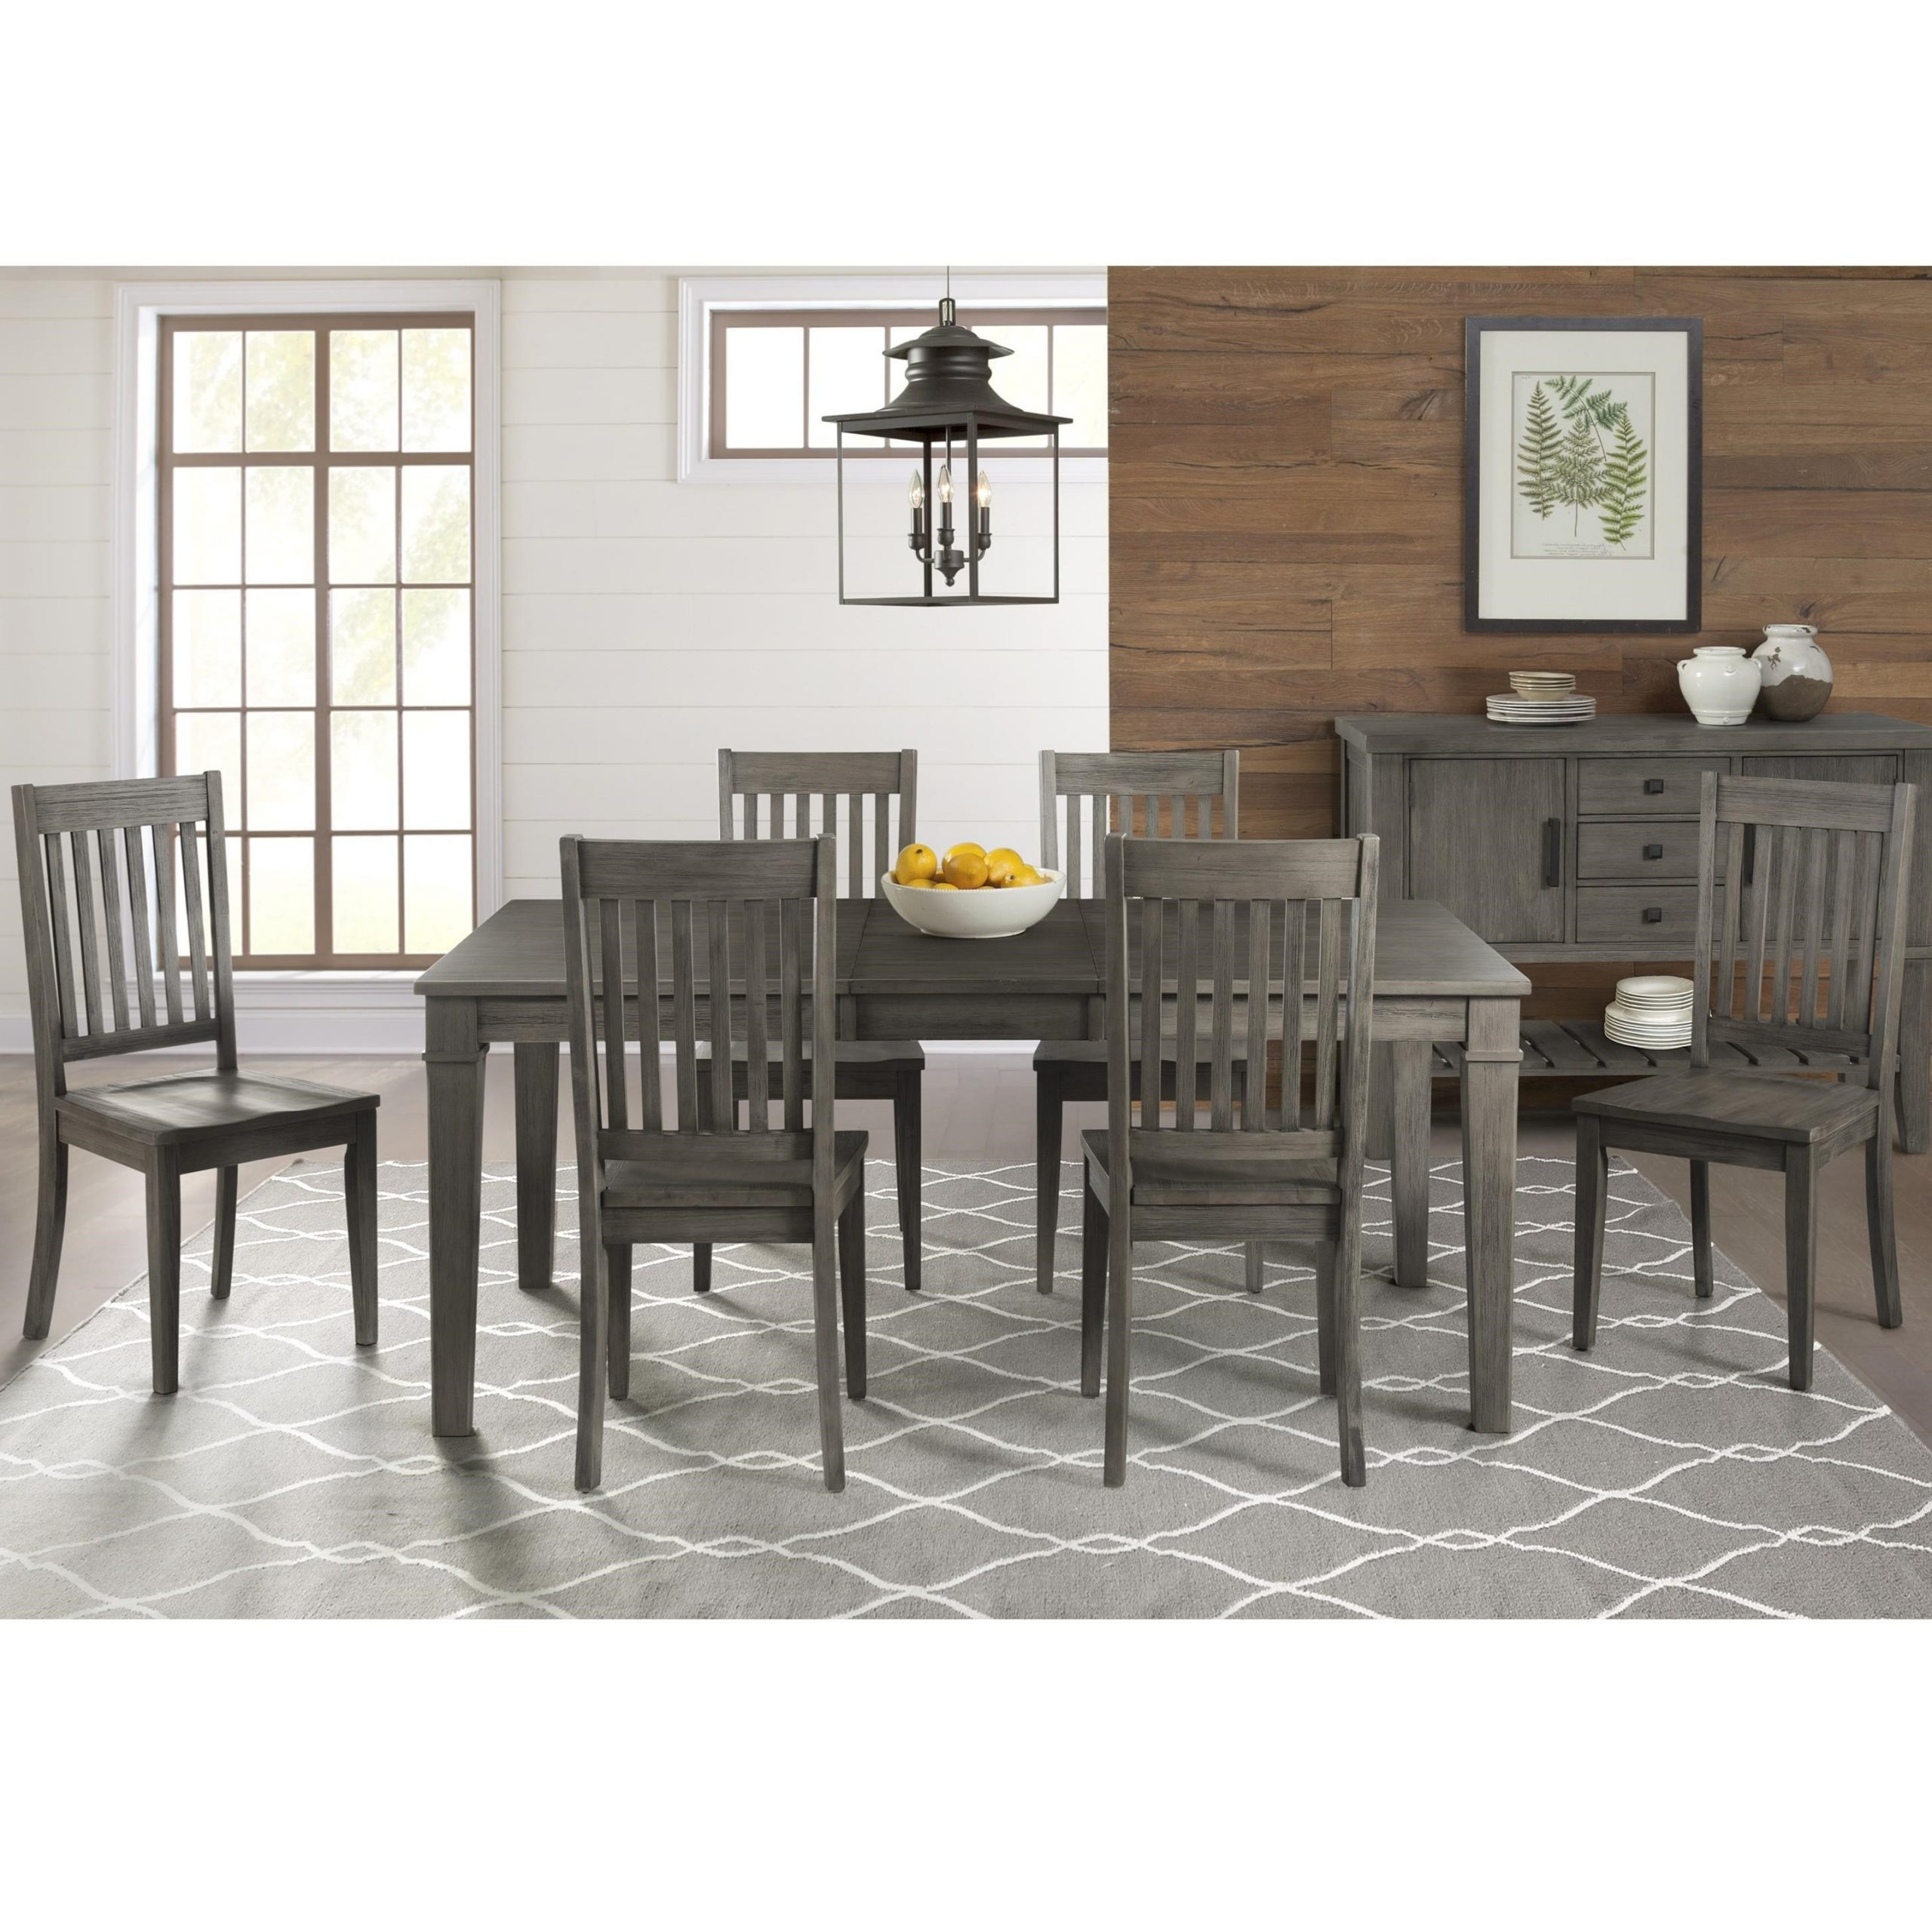 2017 Aamerica Huron 7 Piece Transitional Table And Slat Back Regarding Transitional 6 Seating Casual Dining Tables (View 17 of 30)